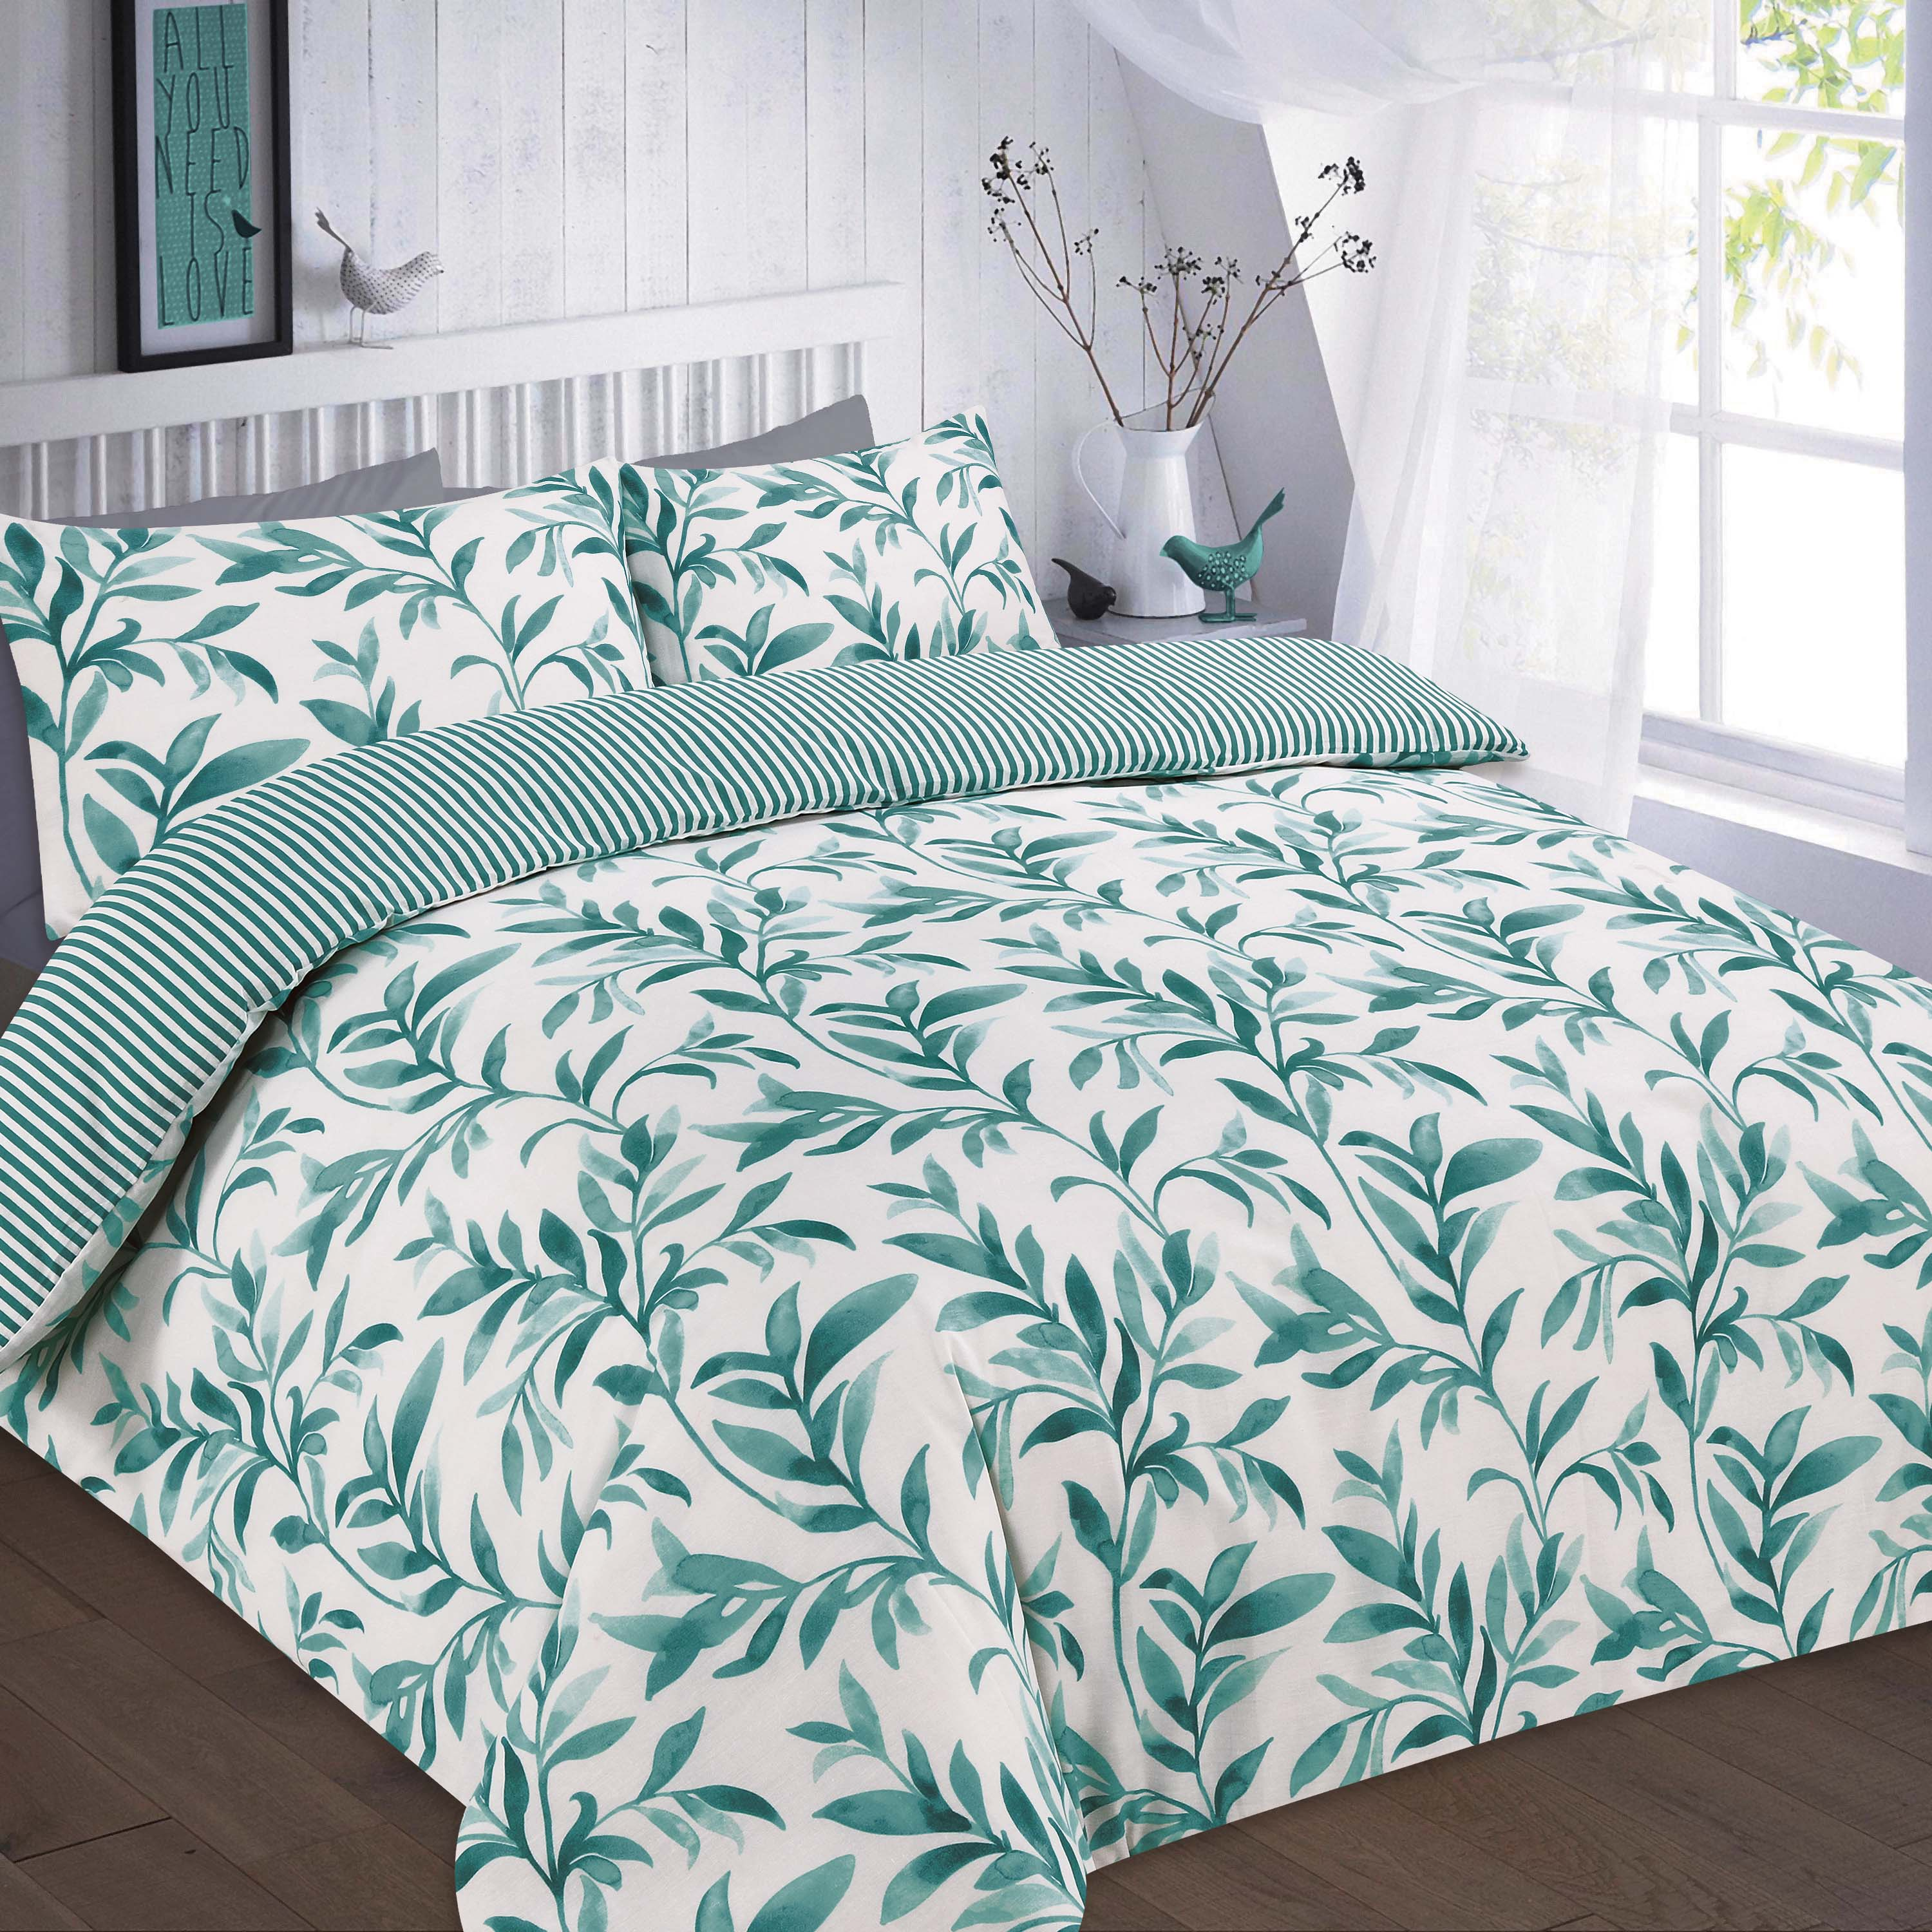 ellie floral reversible duvet cover set wholesale bedding store de lavish. Black Bedroom Furniture Sets. Home Design Ideas